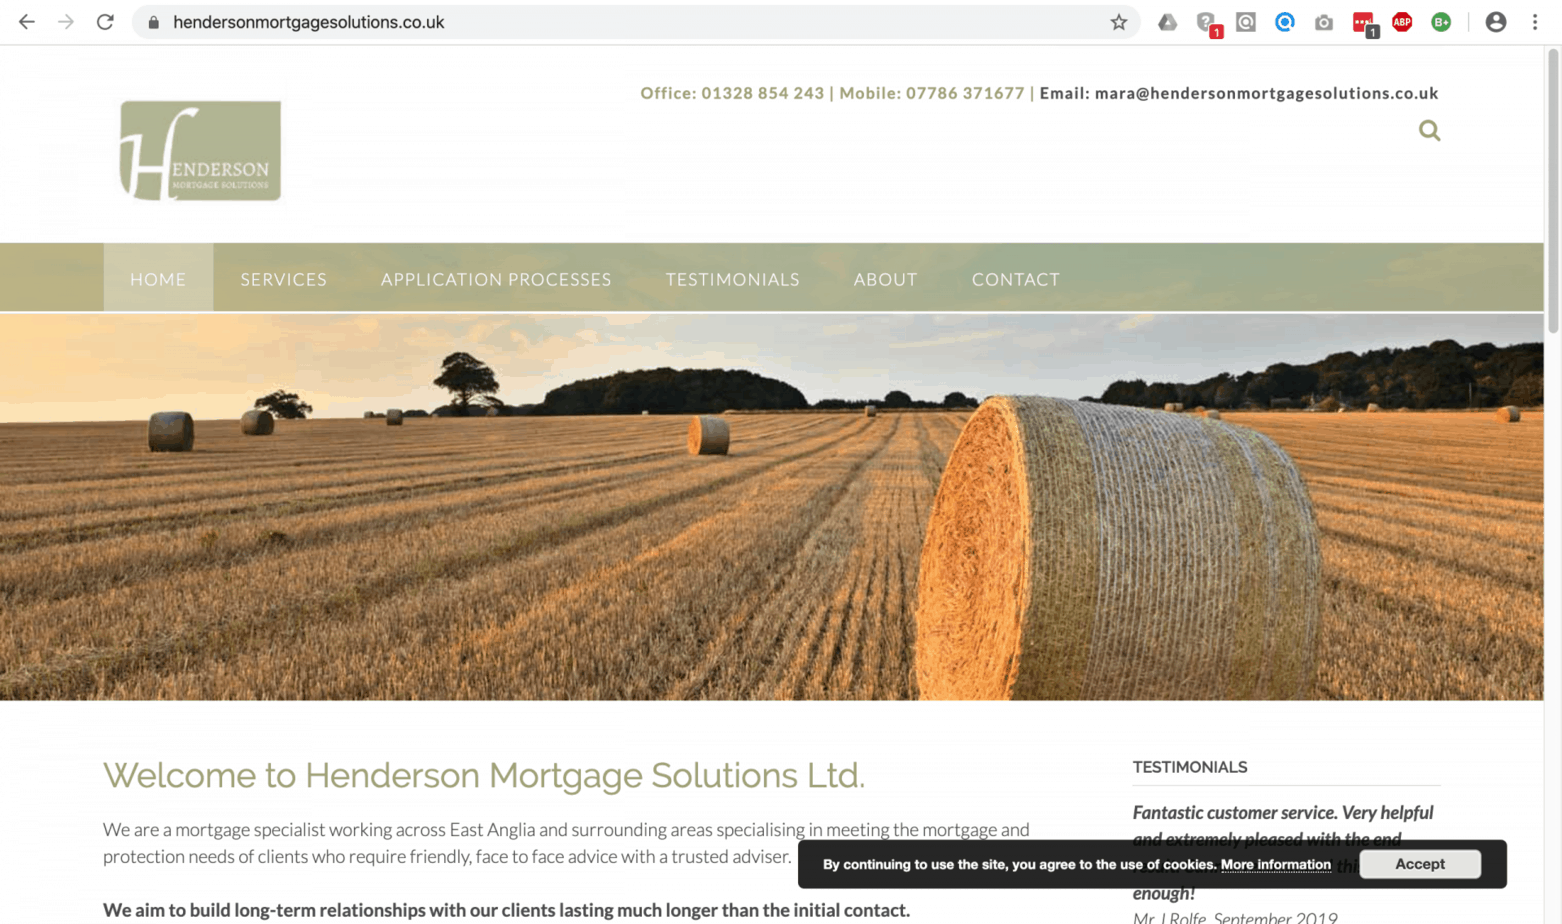 Henderson Mortgage Solutions